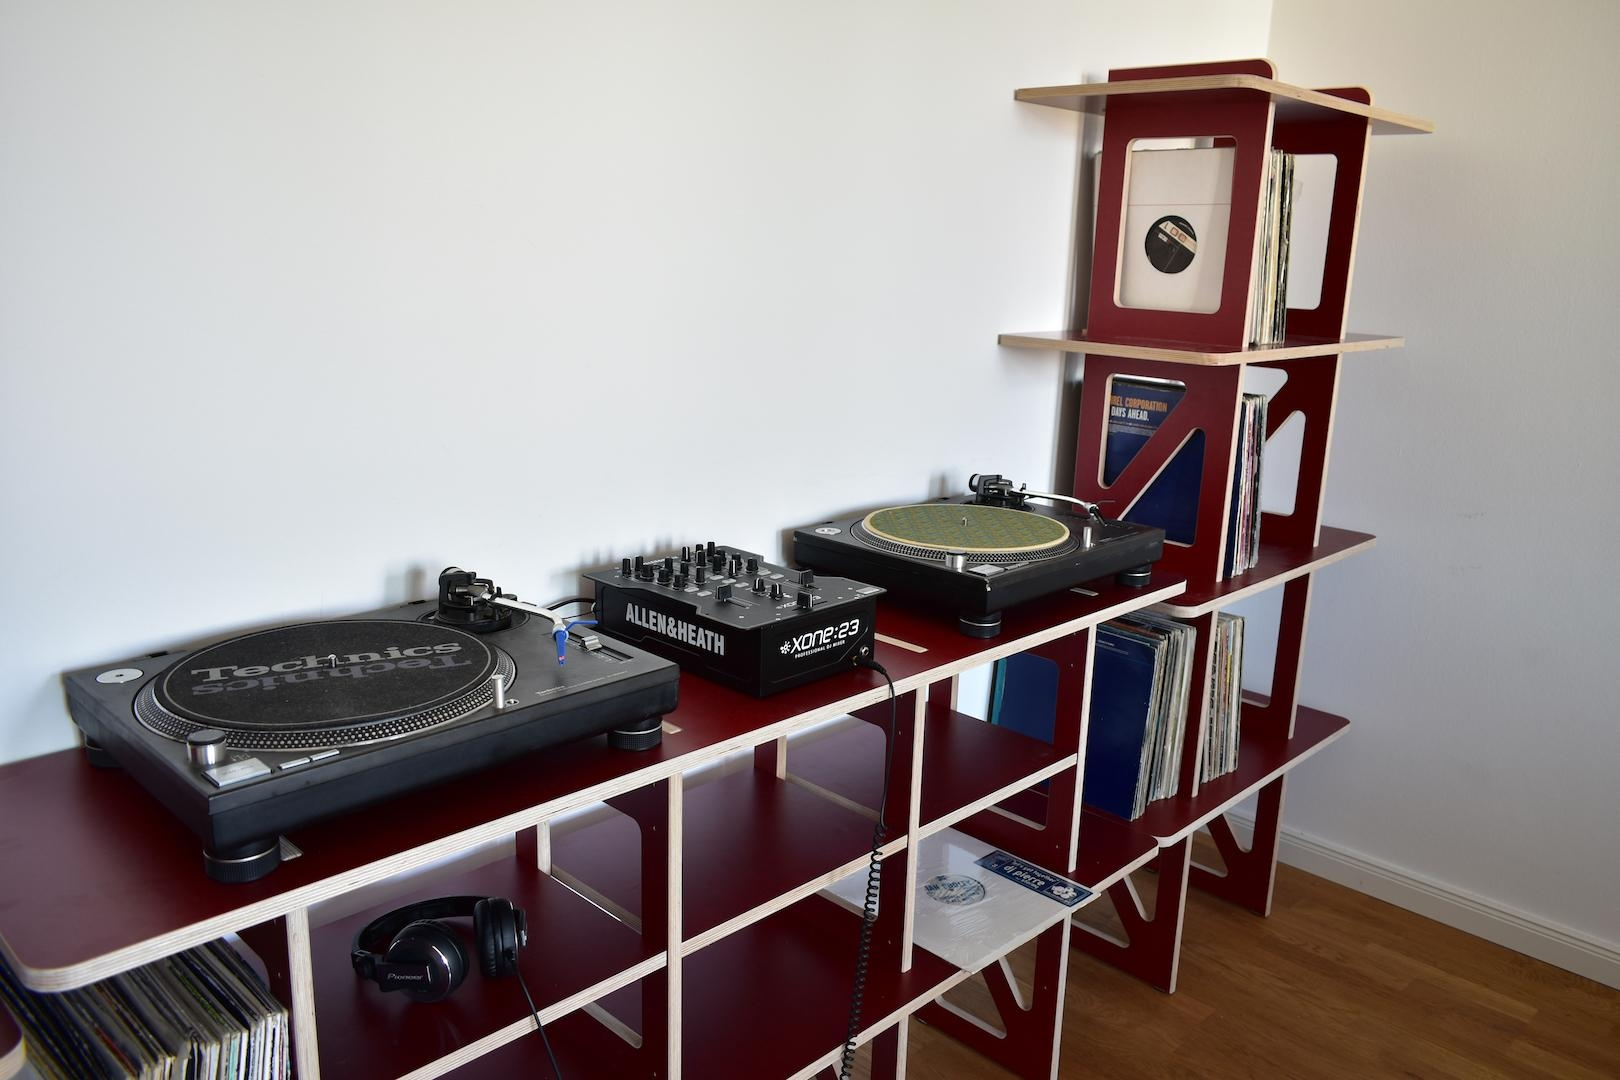 #STARSHELF✨ als #DJ Equipment und #Plattenregal  🎧